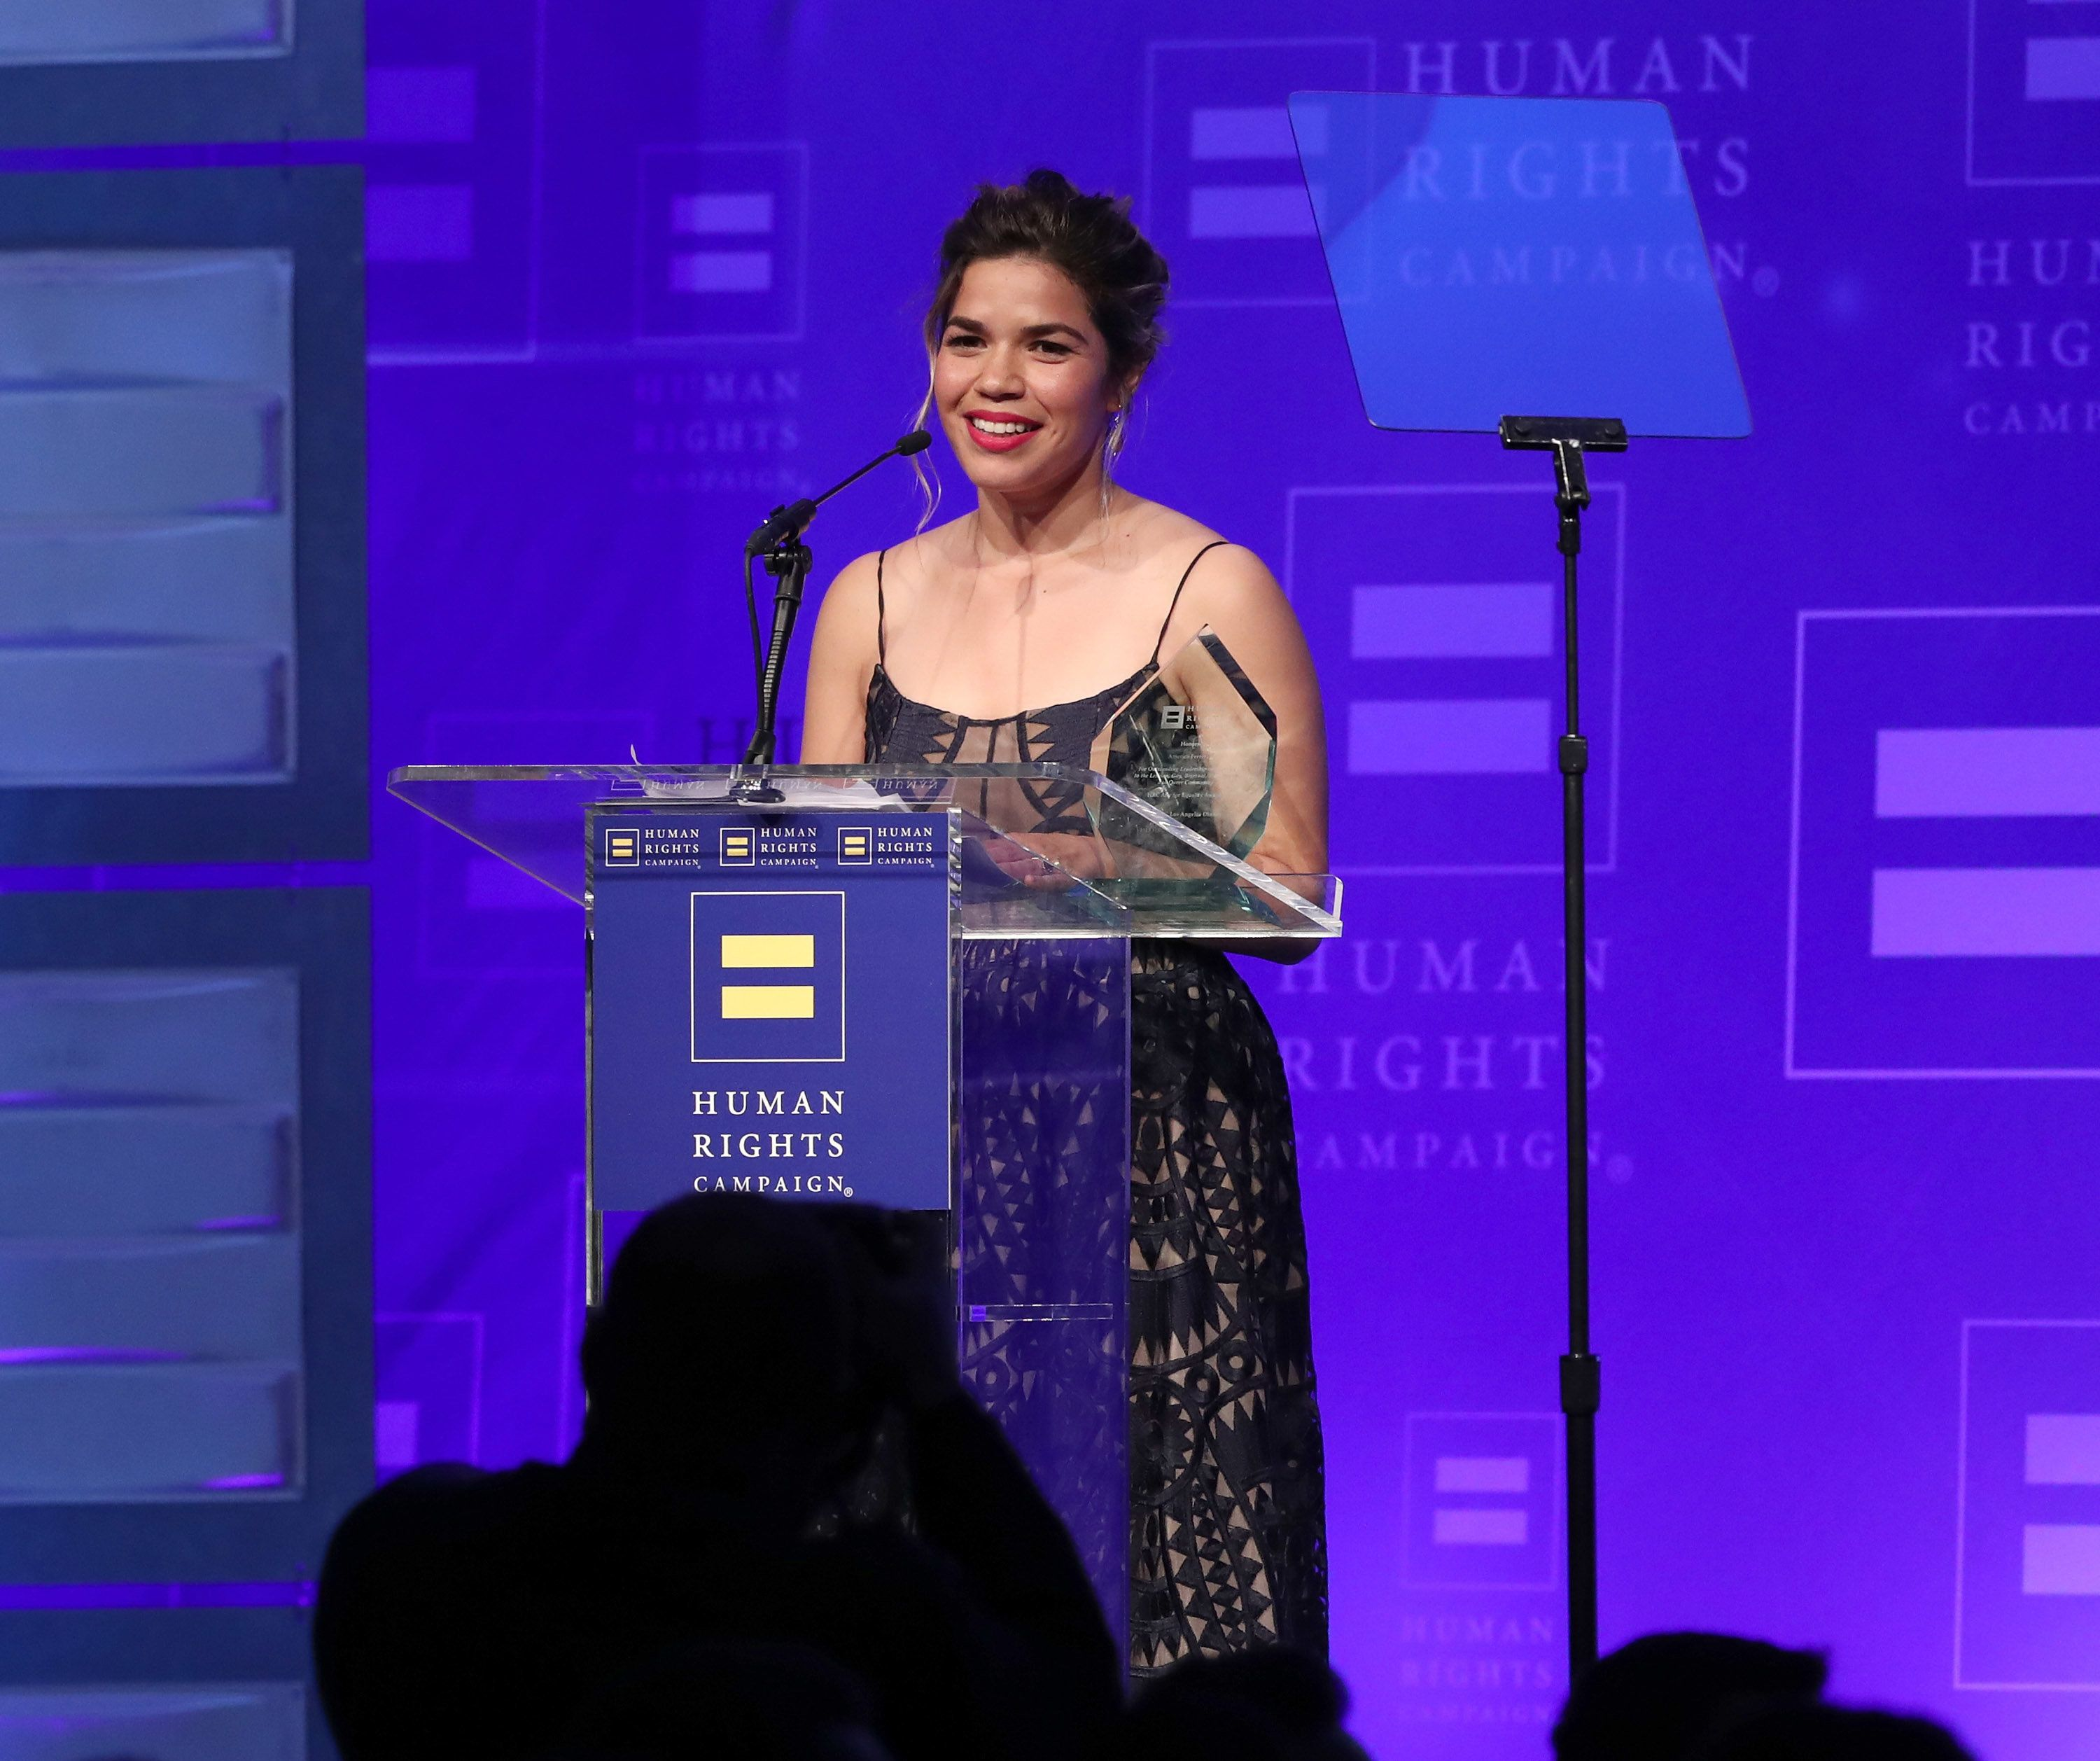 LOS ANGELES, CA - MARCH 18:  Honoree America Ferrera accepts the HRC Ally for Equality Award onstage at the Human Rights Campaign's 2017 Los Angeles Gala Dinner at JW Marriott Los Angeles at L.A. LIVE on March 18, 2017 in Los Angeles, California.  (Photo by Todd Williamson/Getty Images)